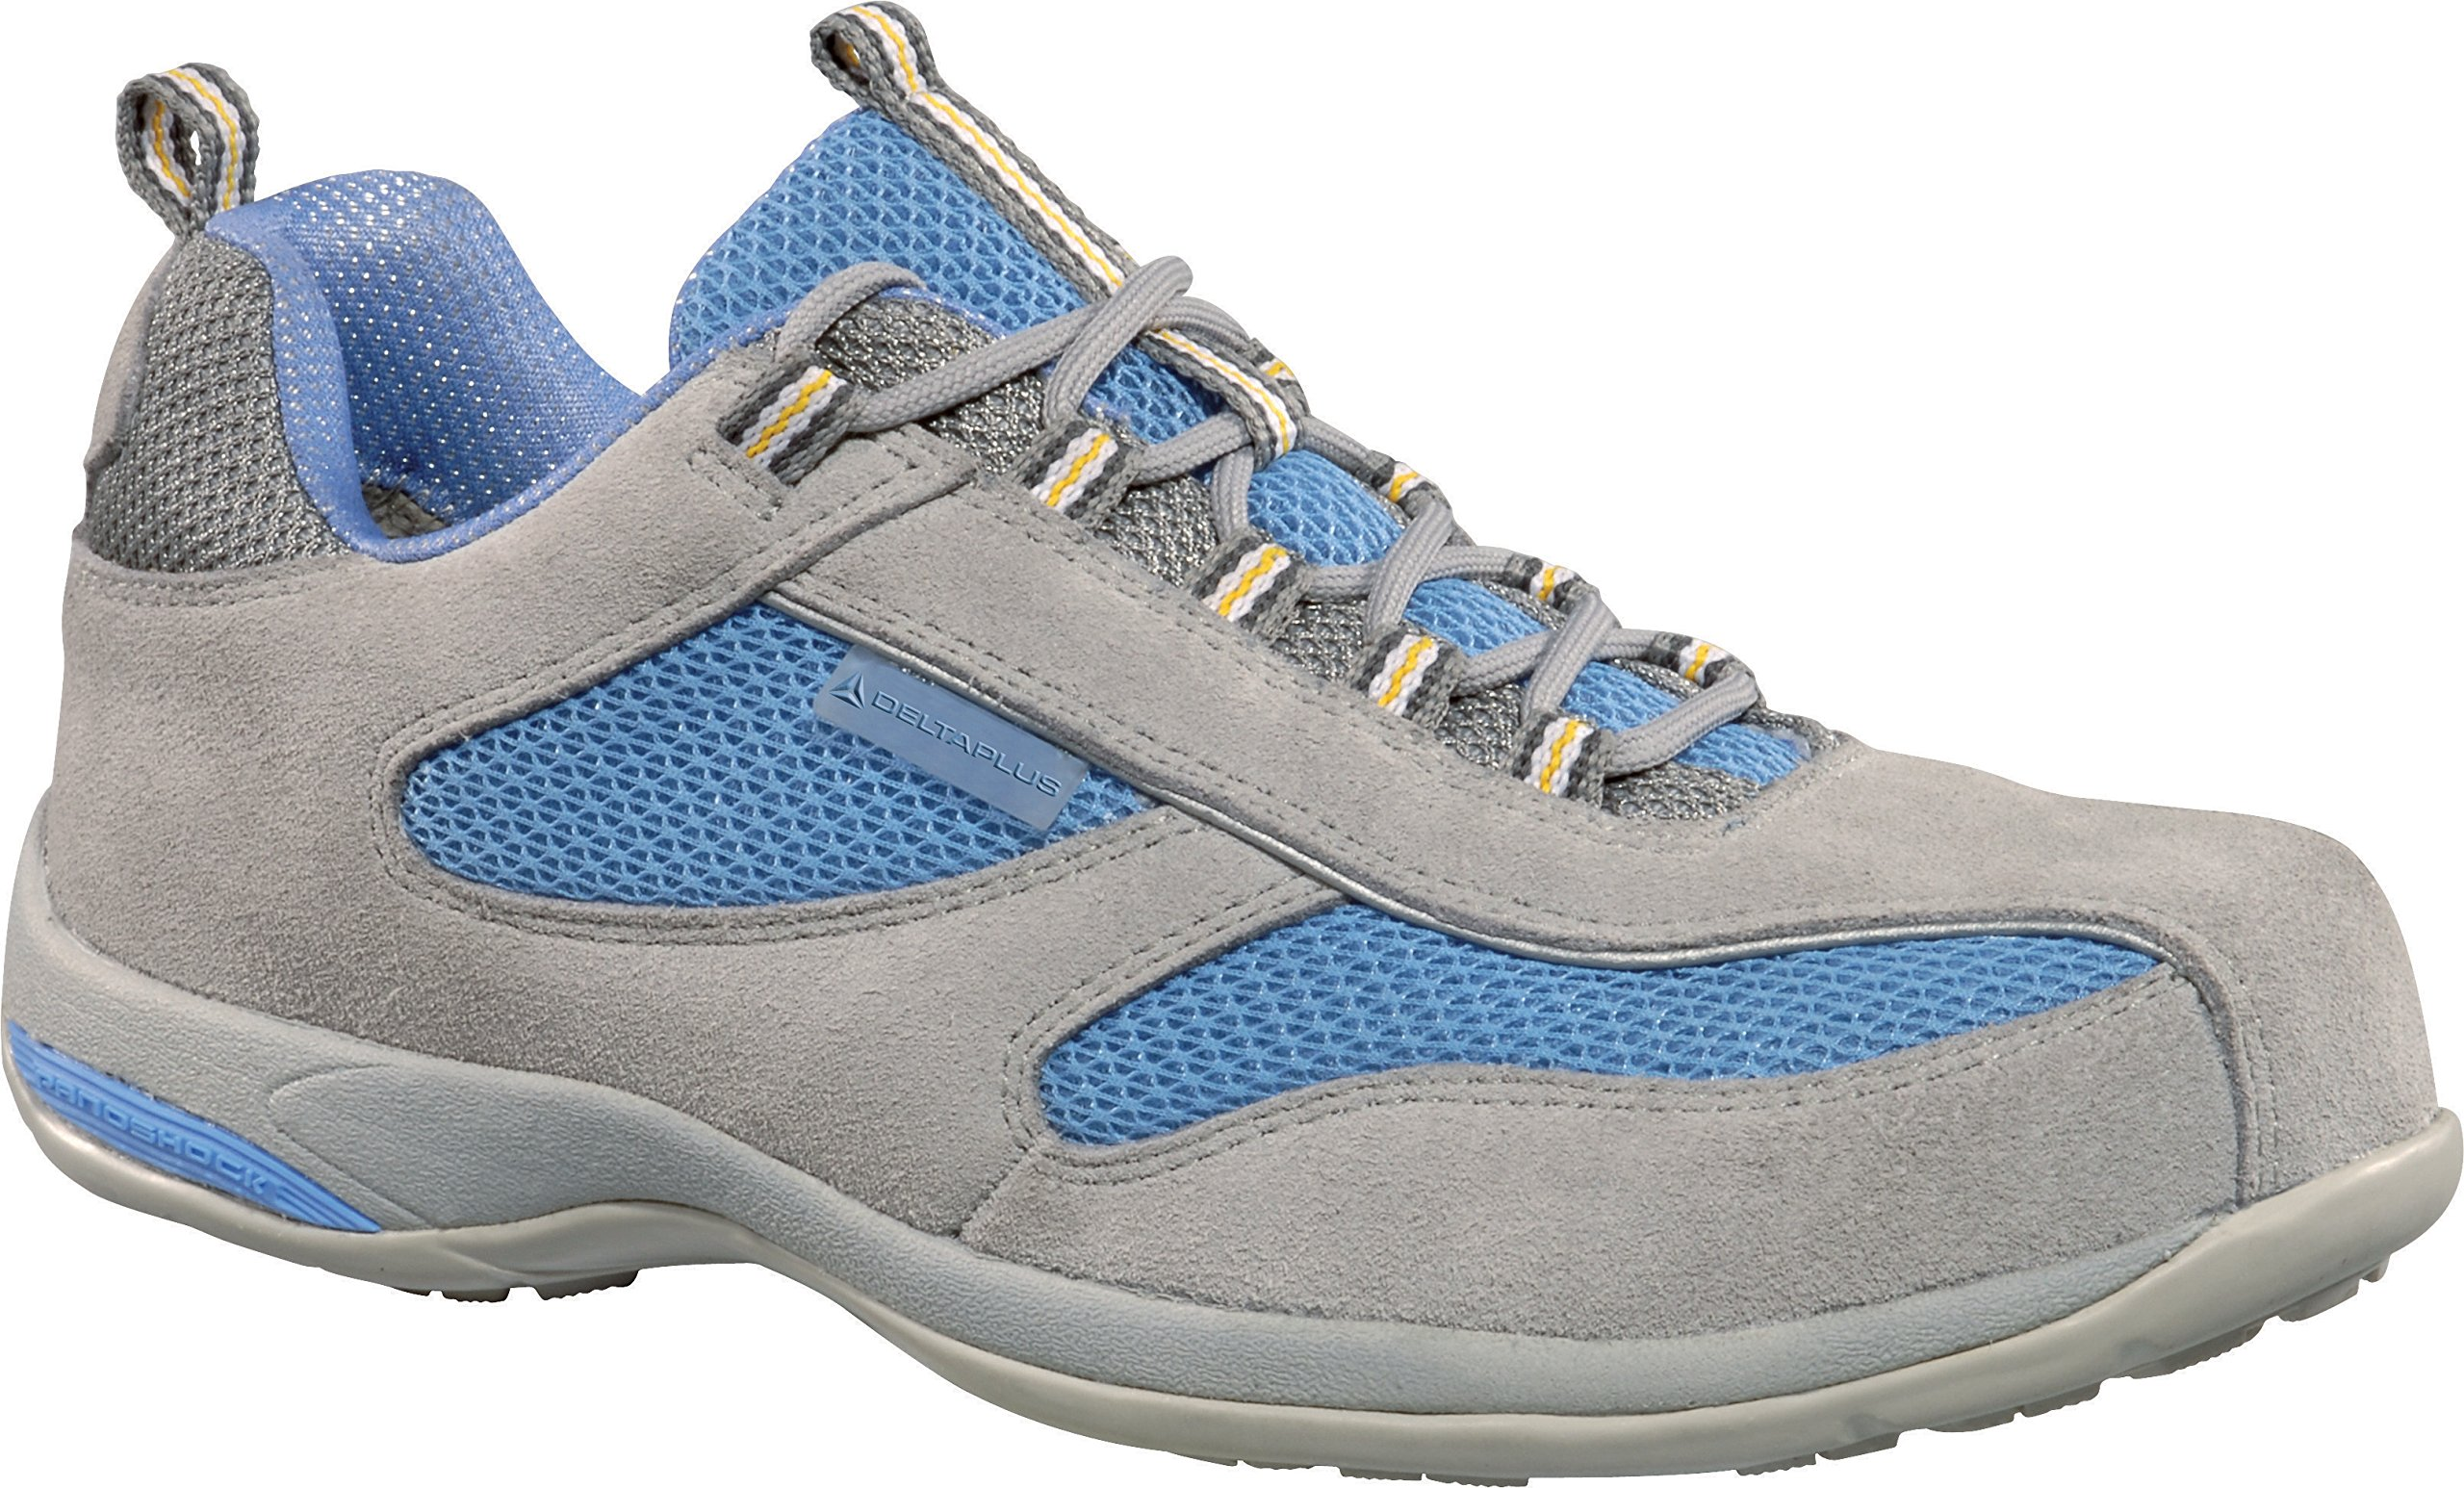 Deltaplus Women's Footwear Antibes Split Blue / Grey Leather/Suede Safety Trainer Shoes US Size 9